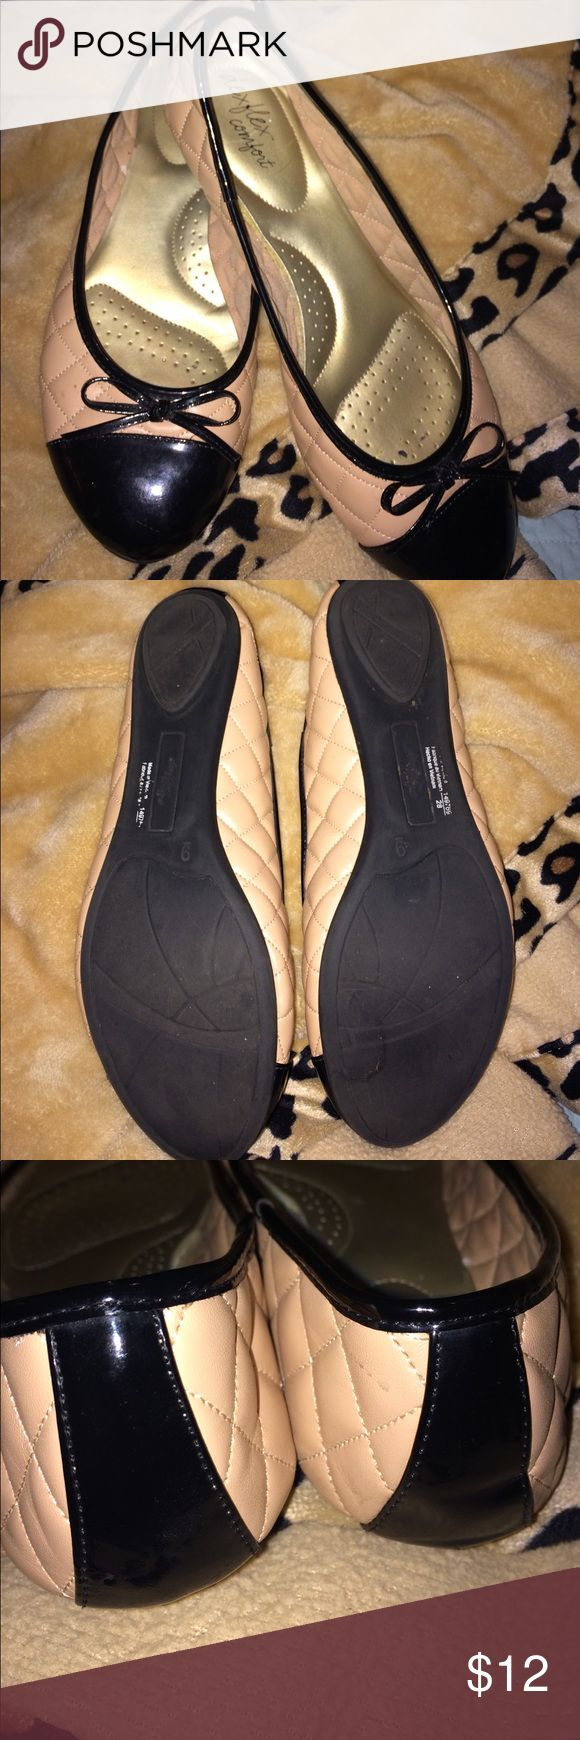 Dex Flex Comfort ballet flats- nude w black patent Nude color ballet flats w black toe and heel caps. Size 9 gently worn. Quilted sides and a cute patent bow make these great w skirts or jeans. Arch support gives you comfort so it doesn't feel like you are walking on concrete. Dex Flex Comfort Shoes Flats & Loafers